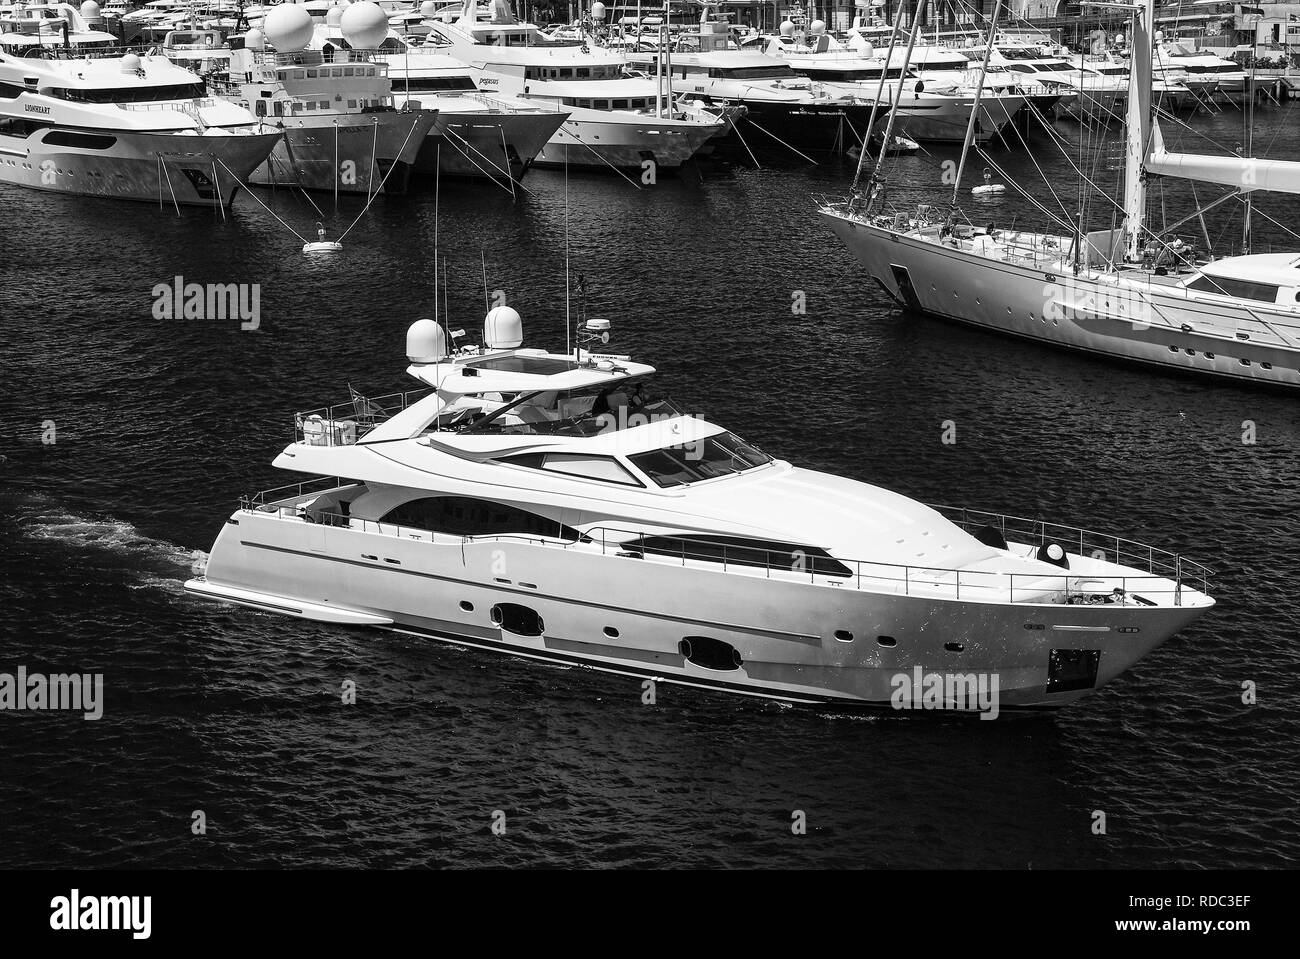 Monte Carlo, Monaco - December 08, 2009: motor yacht in navigation from port. Water craft in blue sea. Luxury lifestyle. Pleasure and sport. Summer vacation and wanderlust. - Stock Image